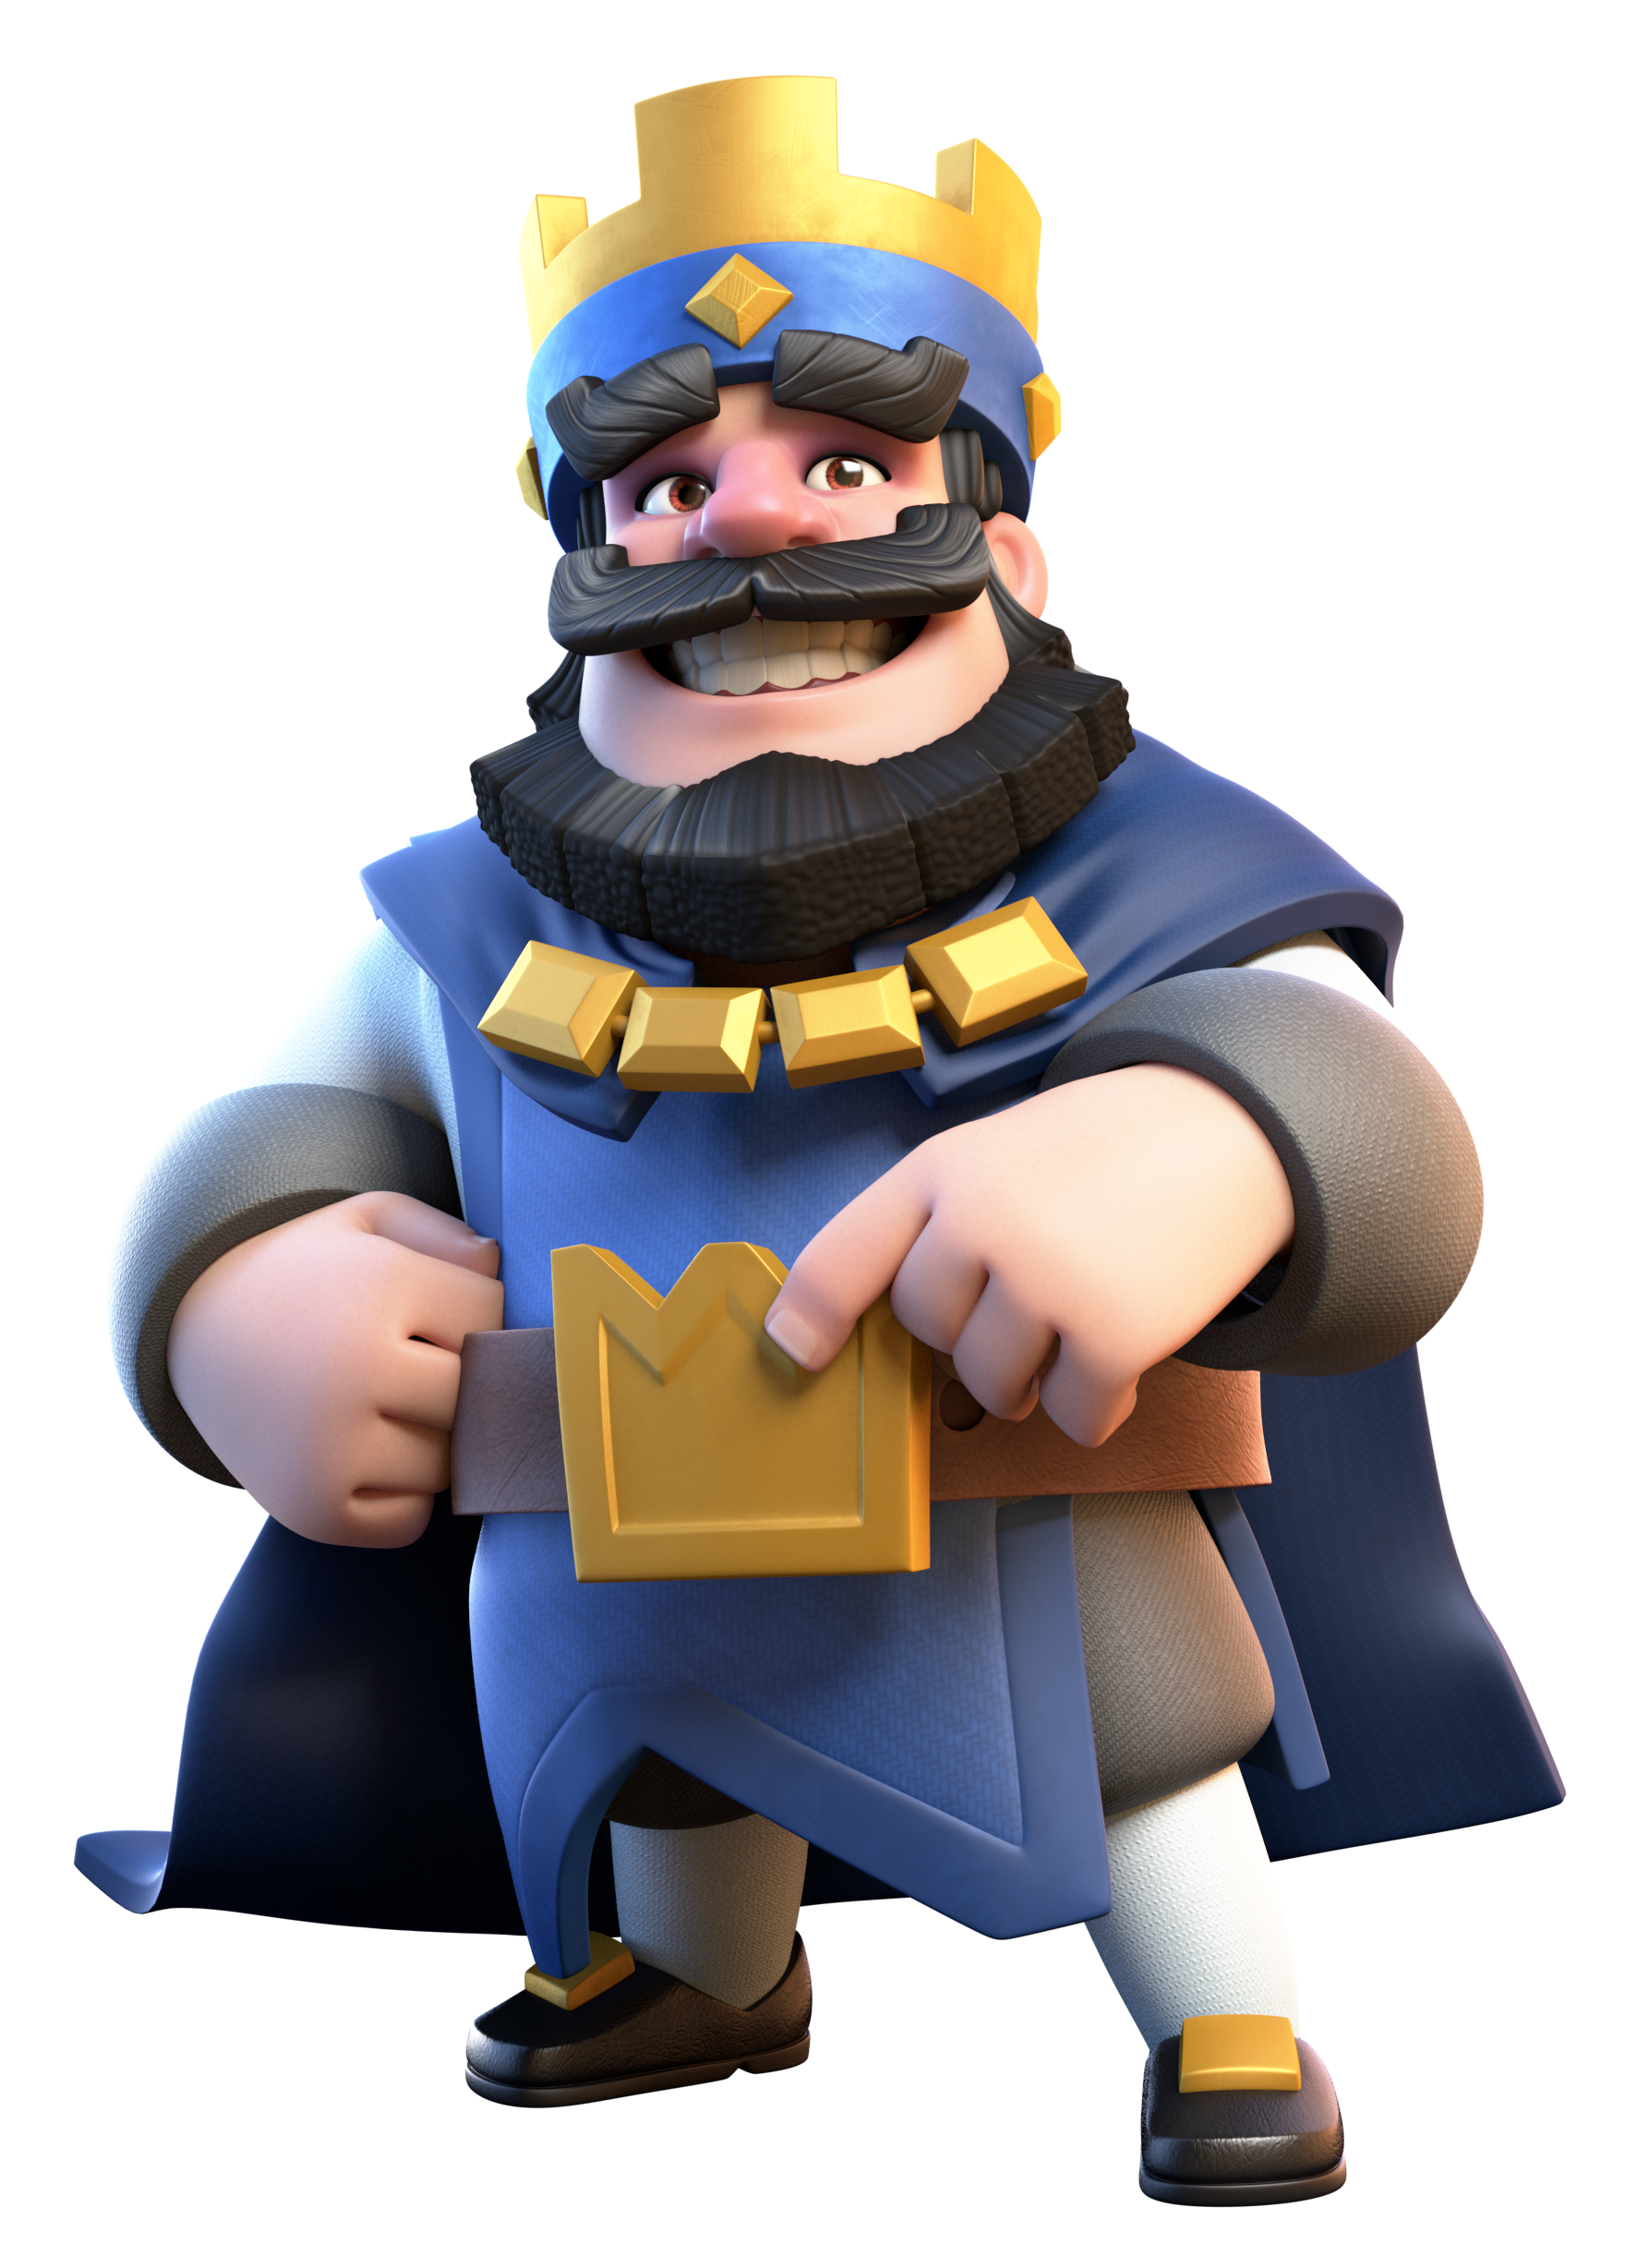 Image - Blue King.png | Clash Royale Wiki | FANDOM powered ...